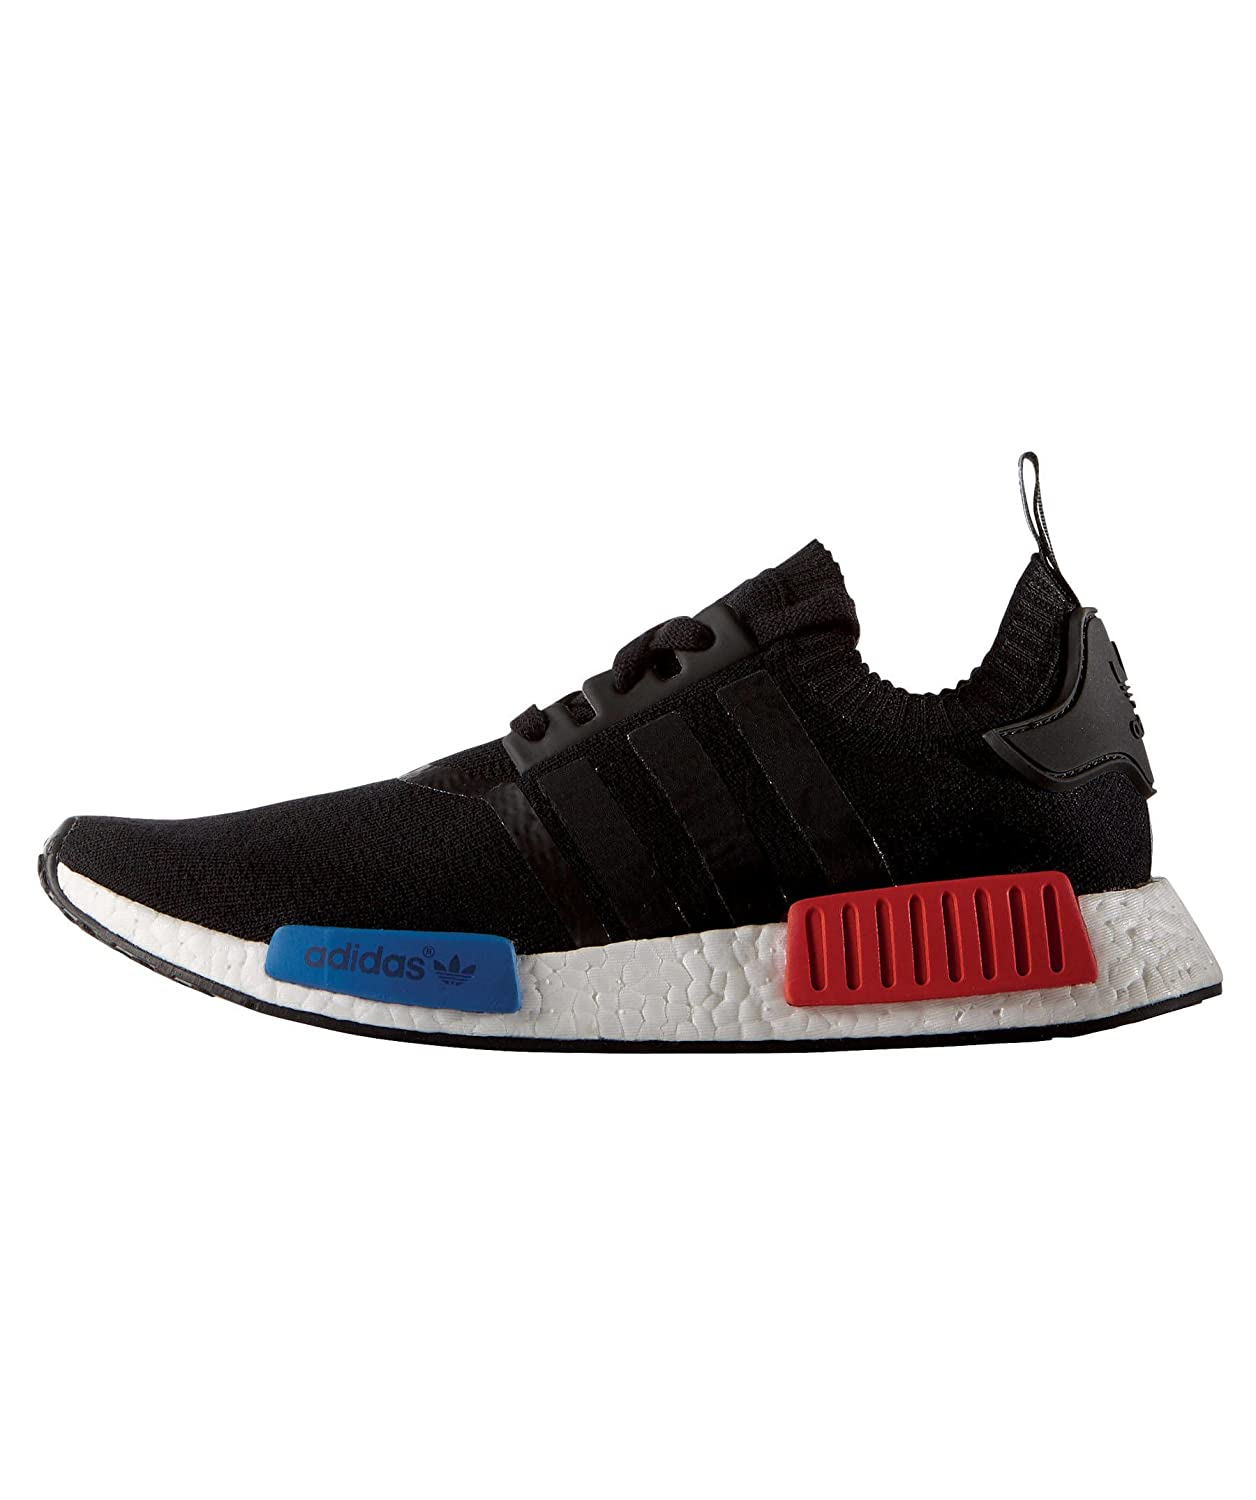 adidas Originals Men s NMD Runner Pk Black and Red Running Shoes - 9 UK  Buy  Online at Low Prices in India - Amazon.in 566edc69e